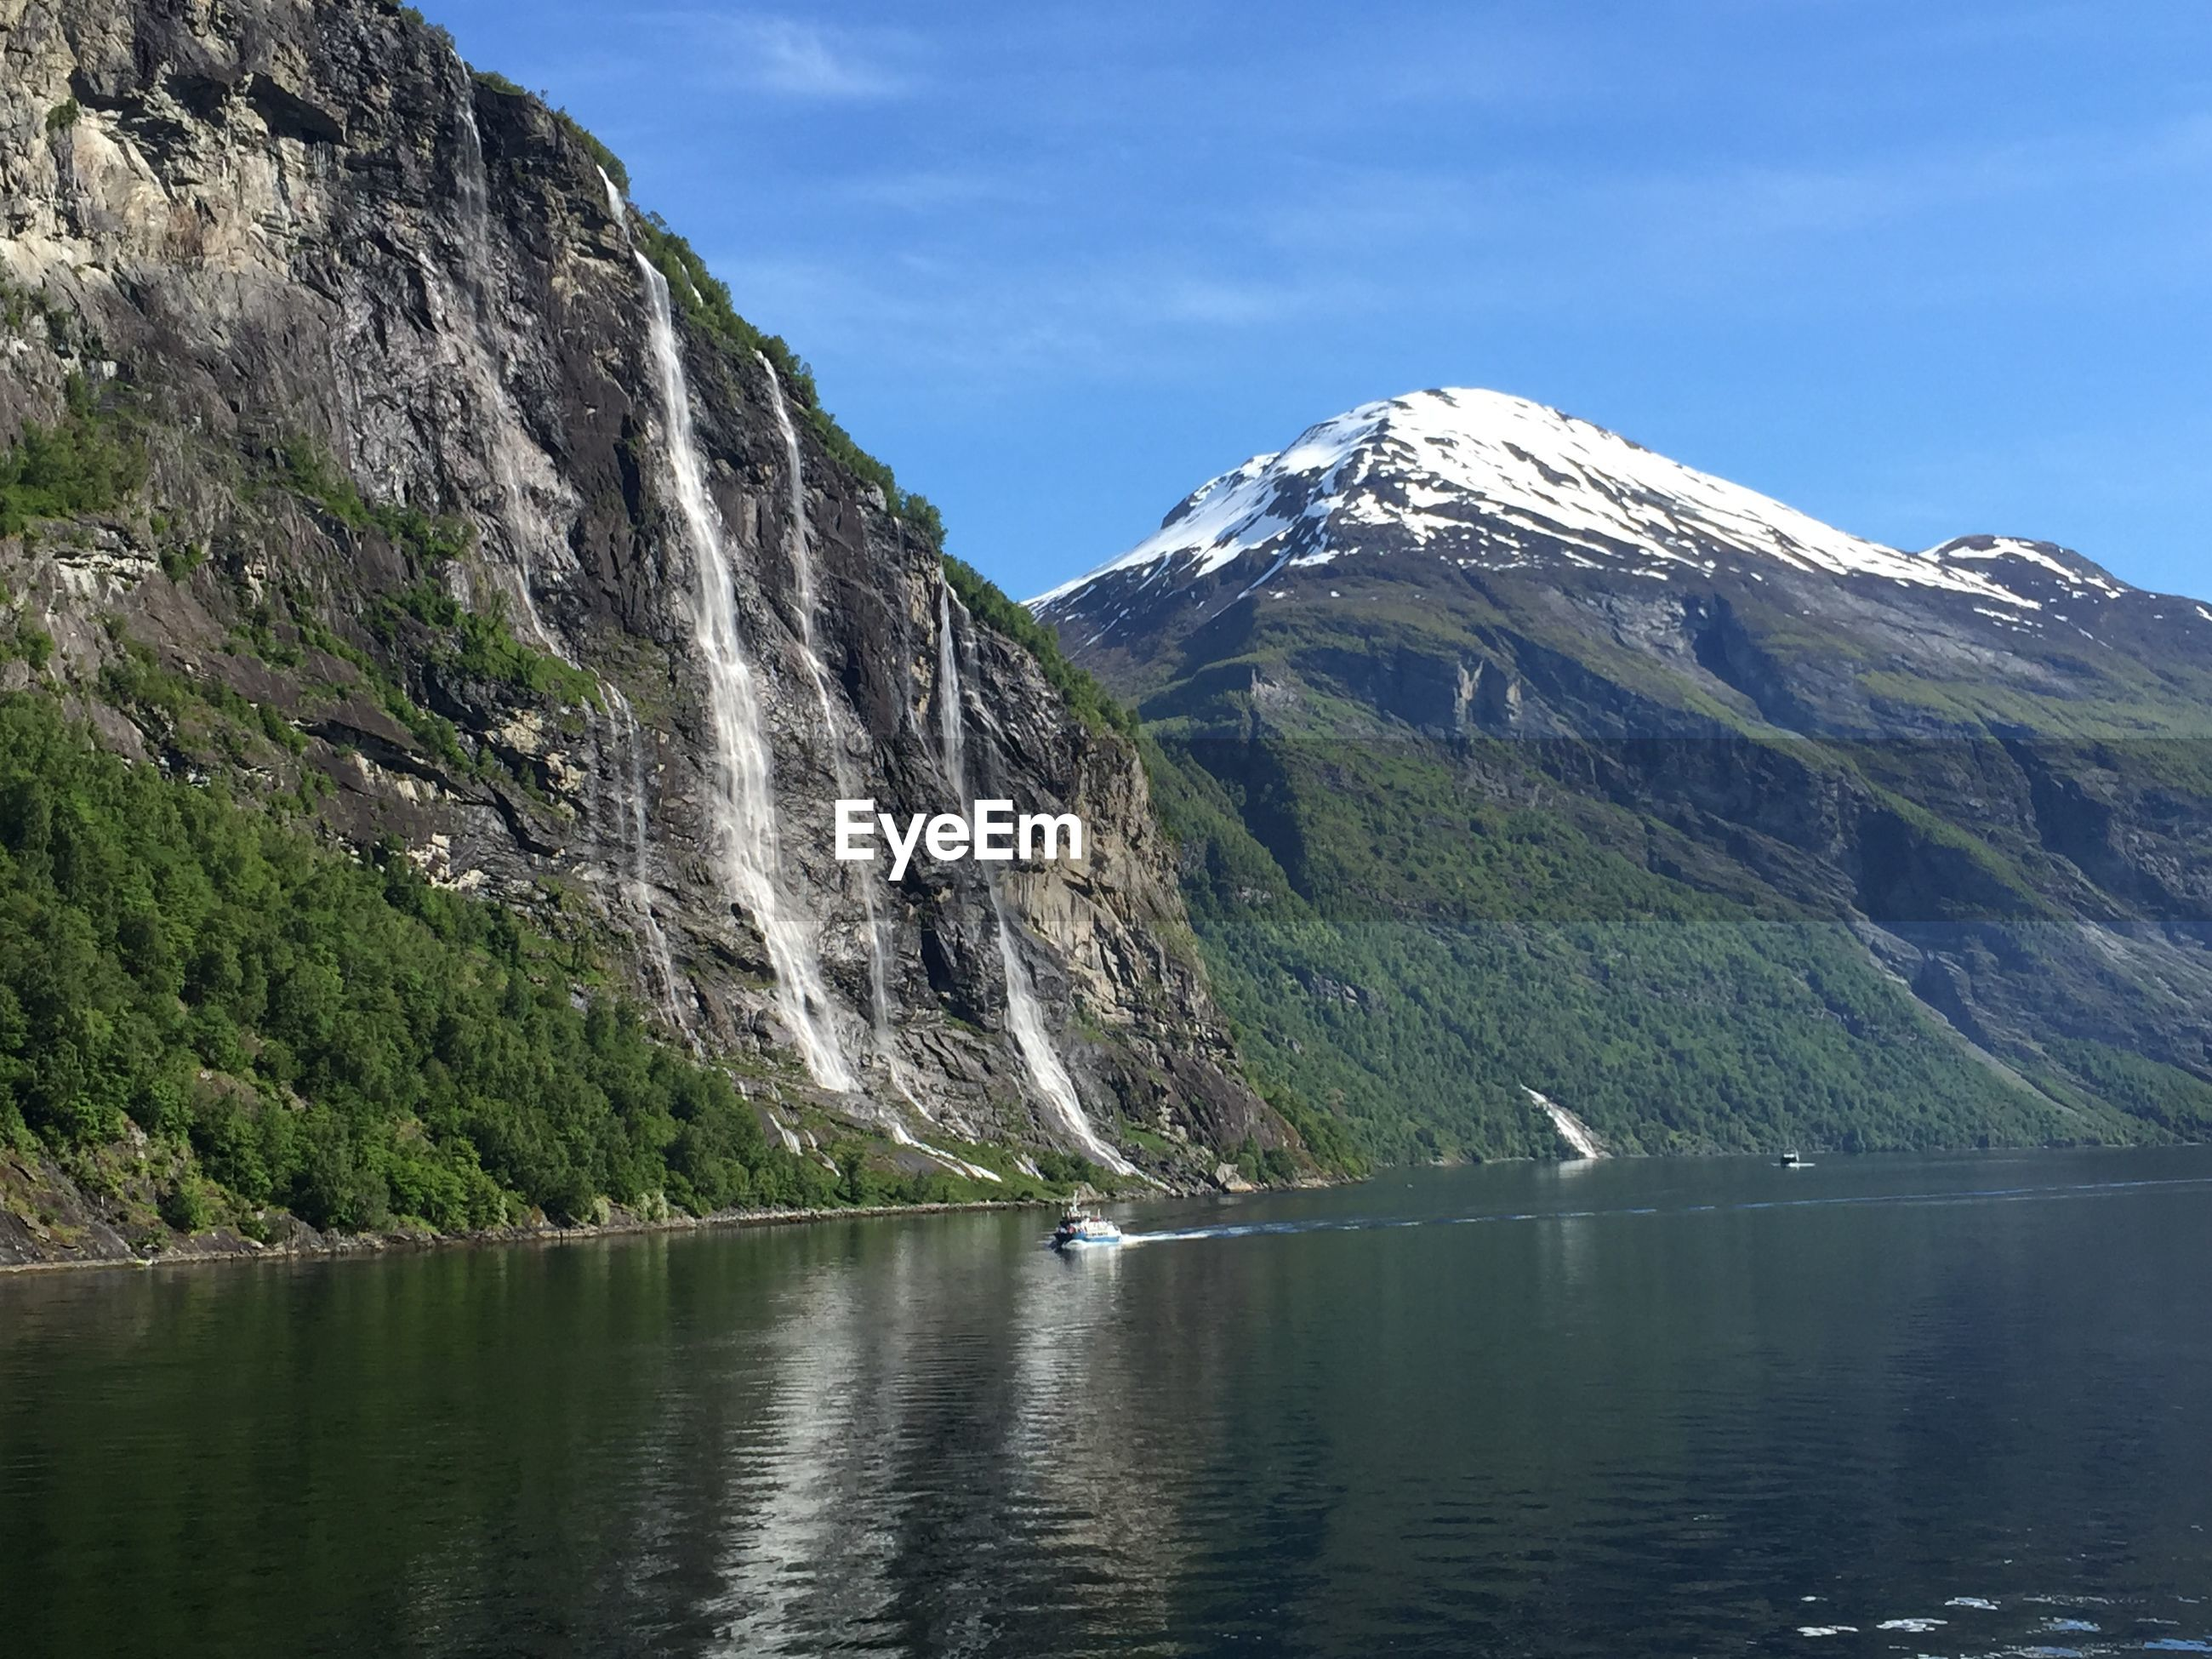 Majestic snow-capped mountains on fjord side